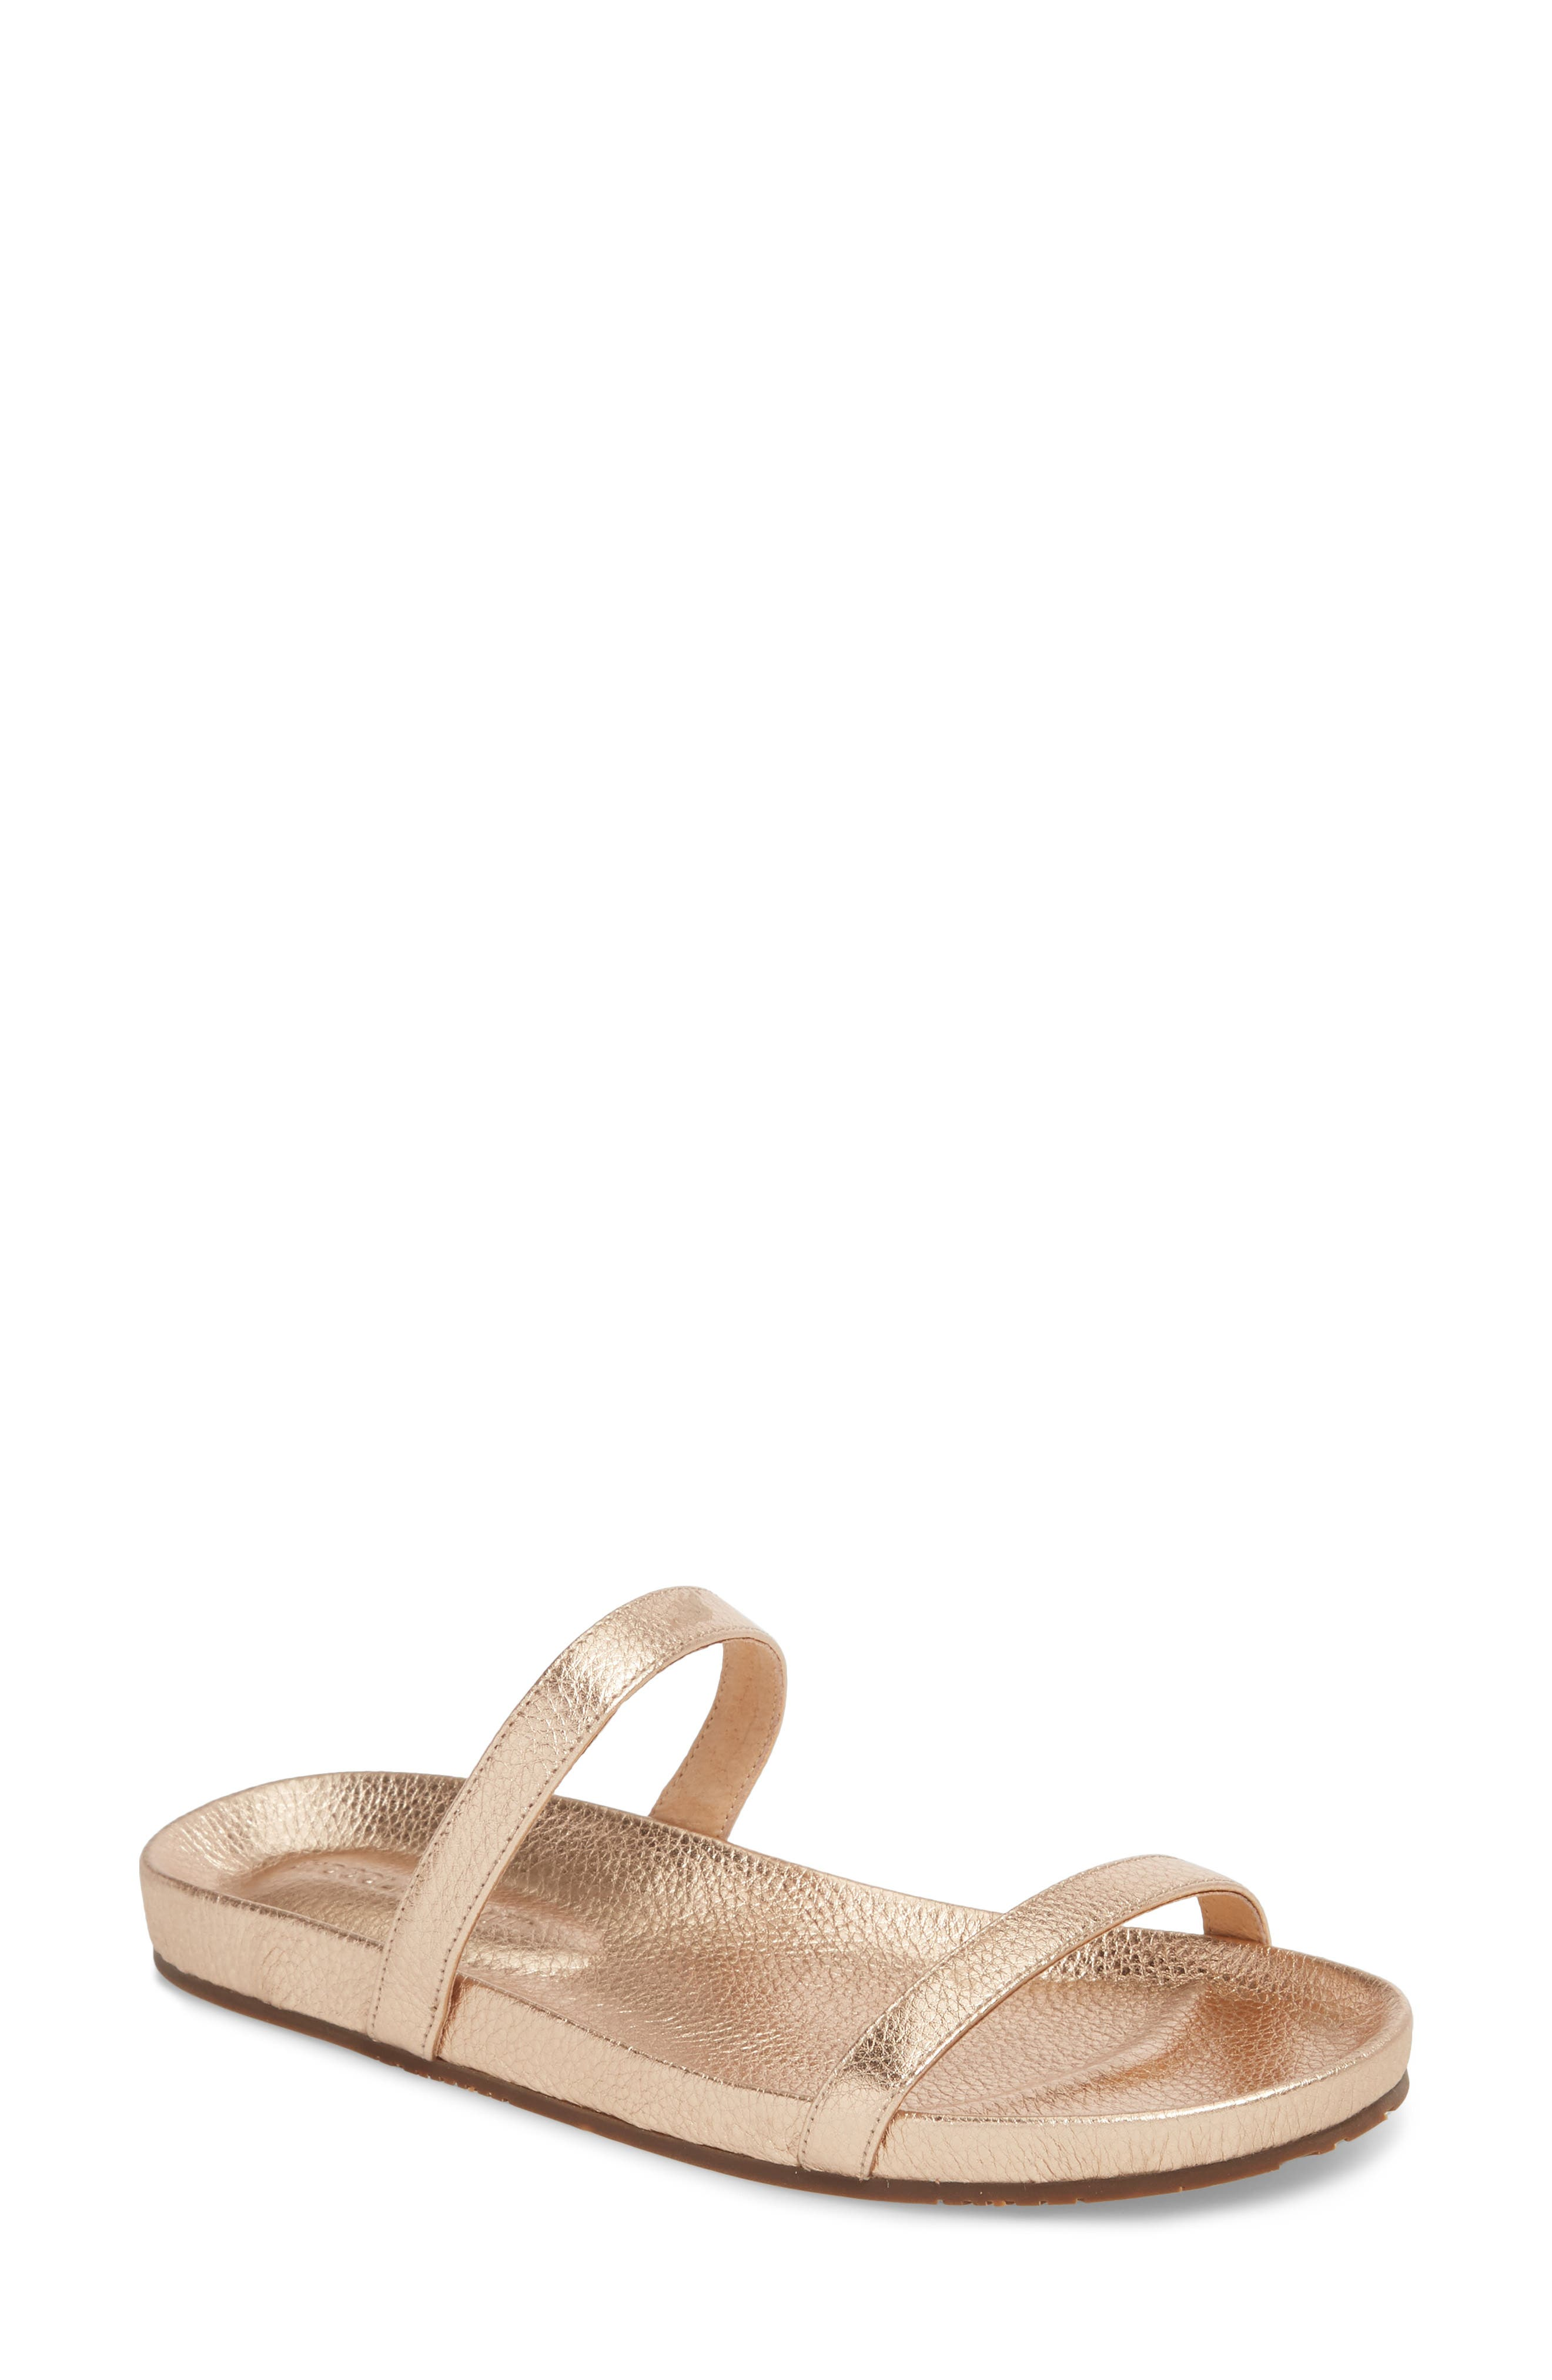 Yale Two-Strap Sandal,                             Main thumbnail 1, color,                             Rose Gold Leather